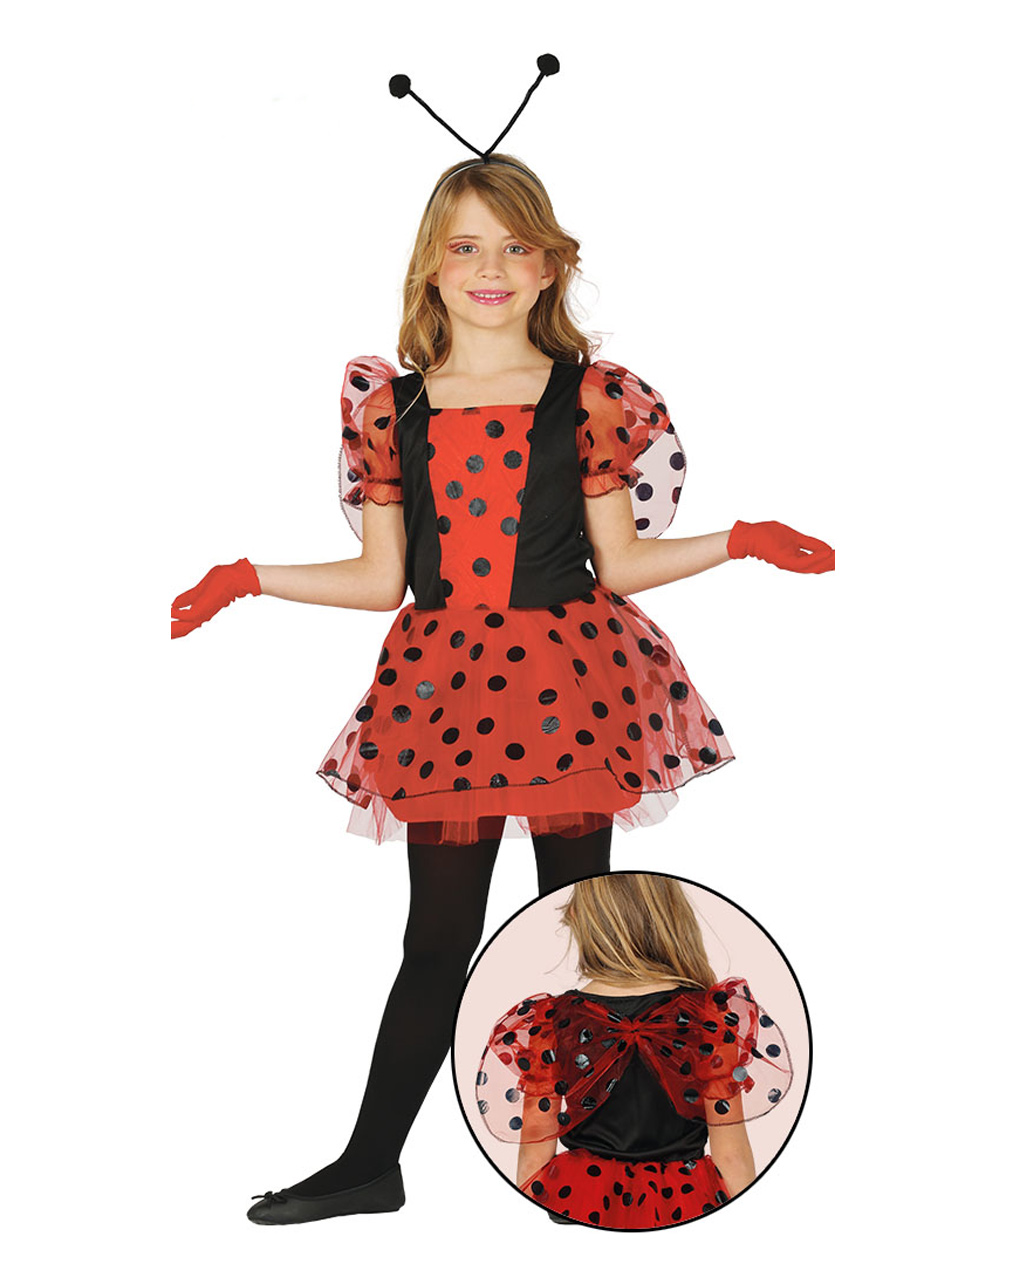 Marienkafer Fee Kinderkostum Fur Fasching Horror Shop Com